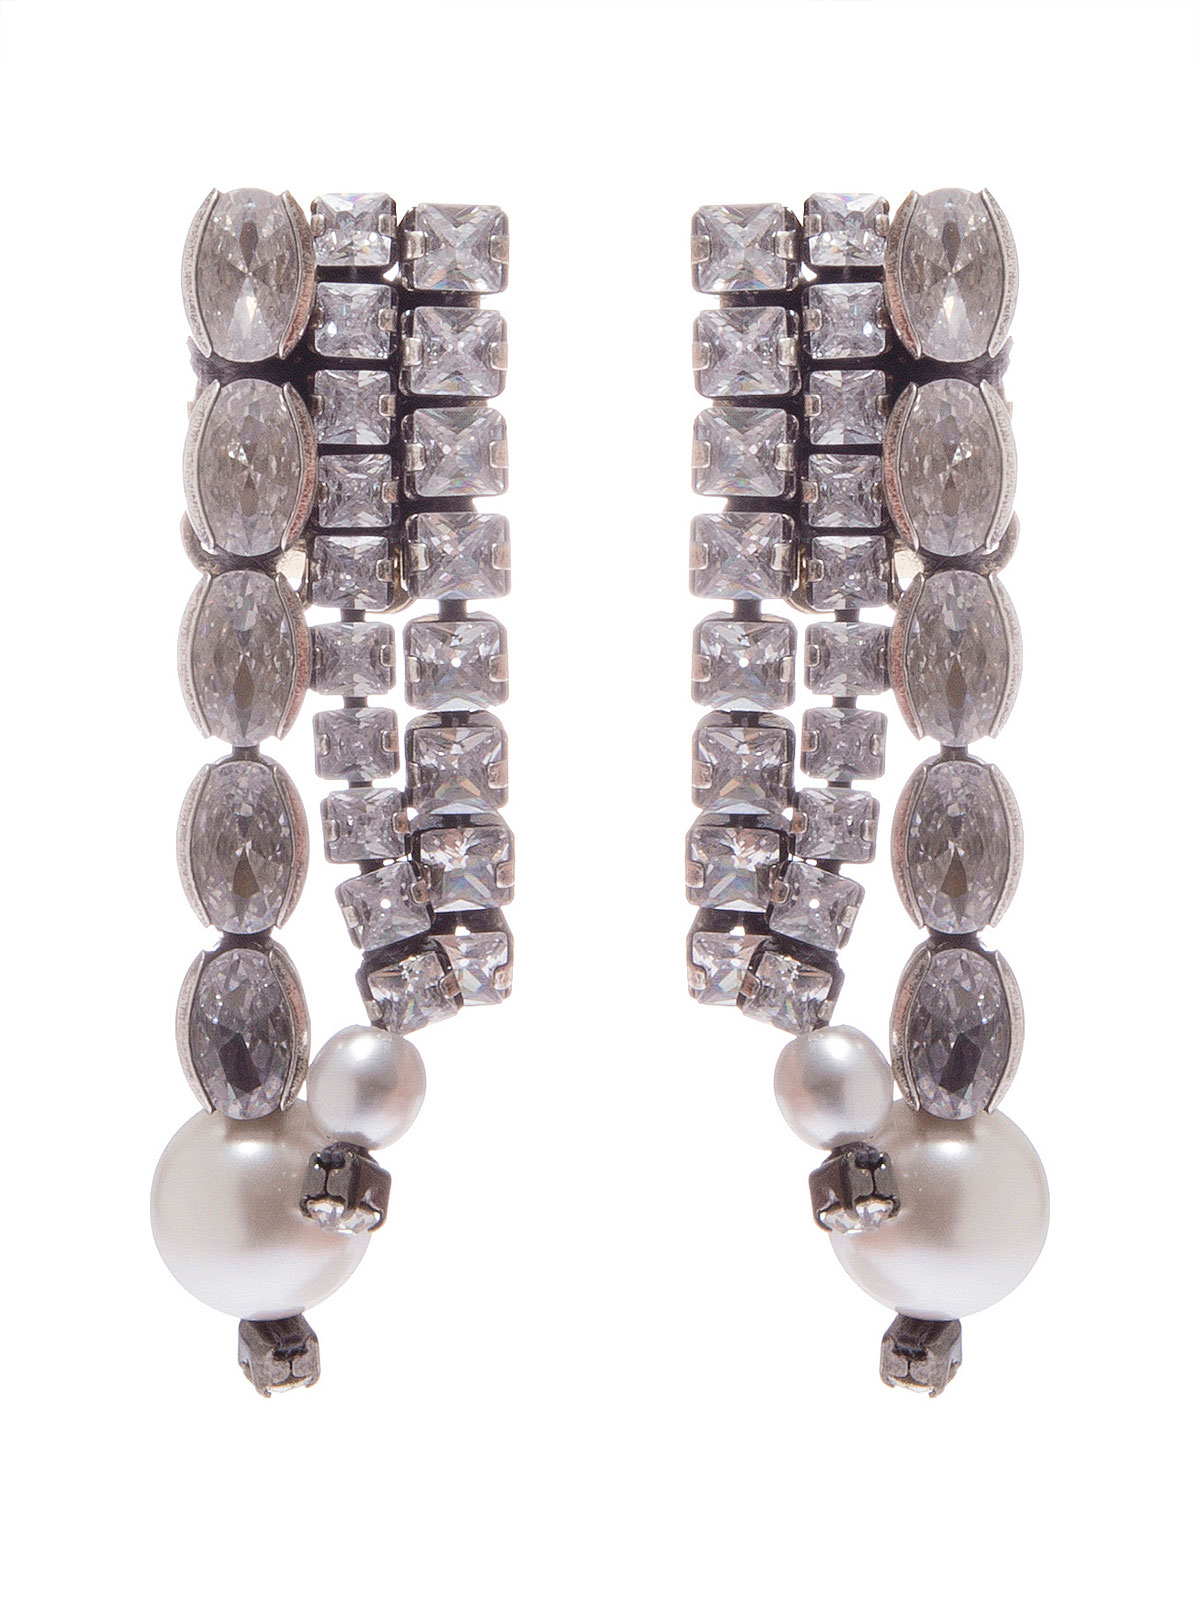 Crystal cascade earrings ending with glass pearls